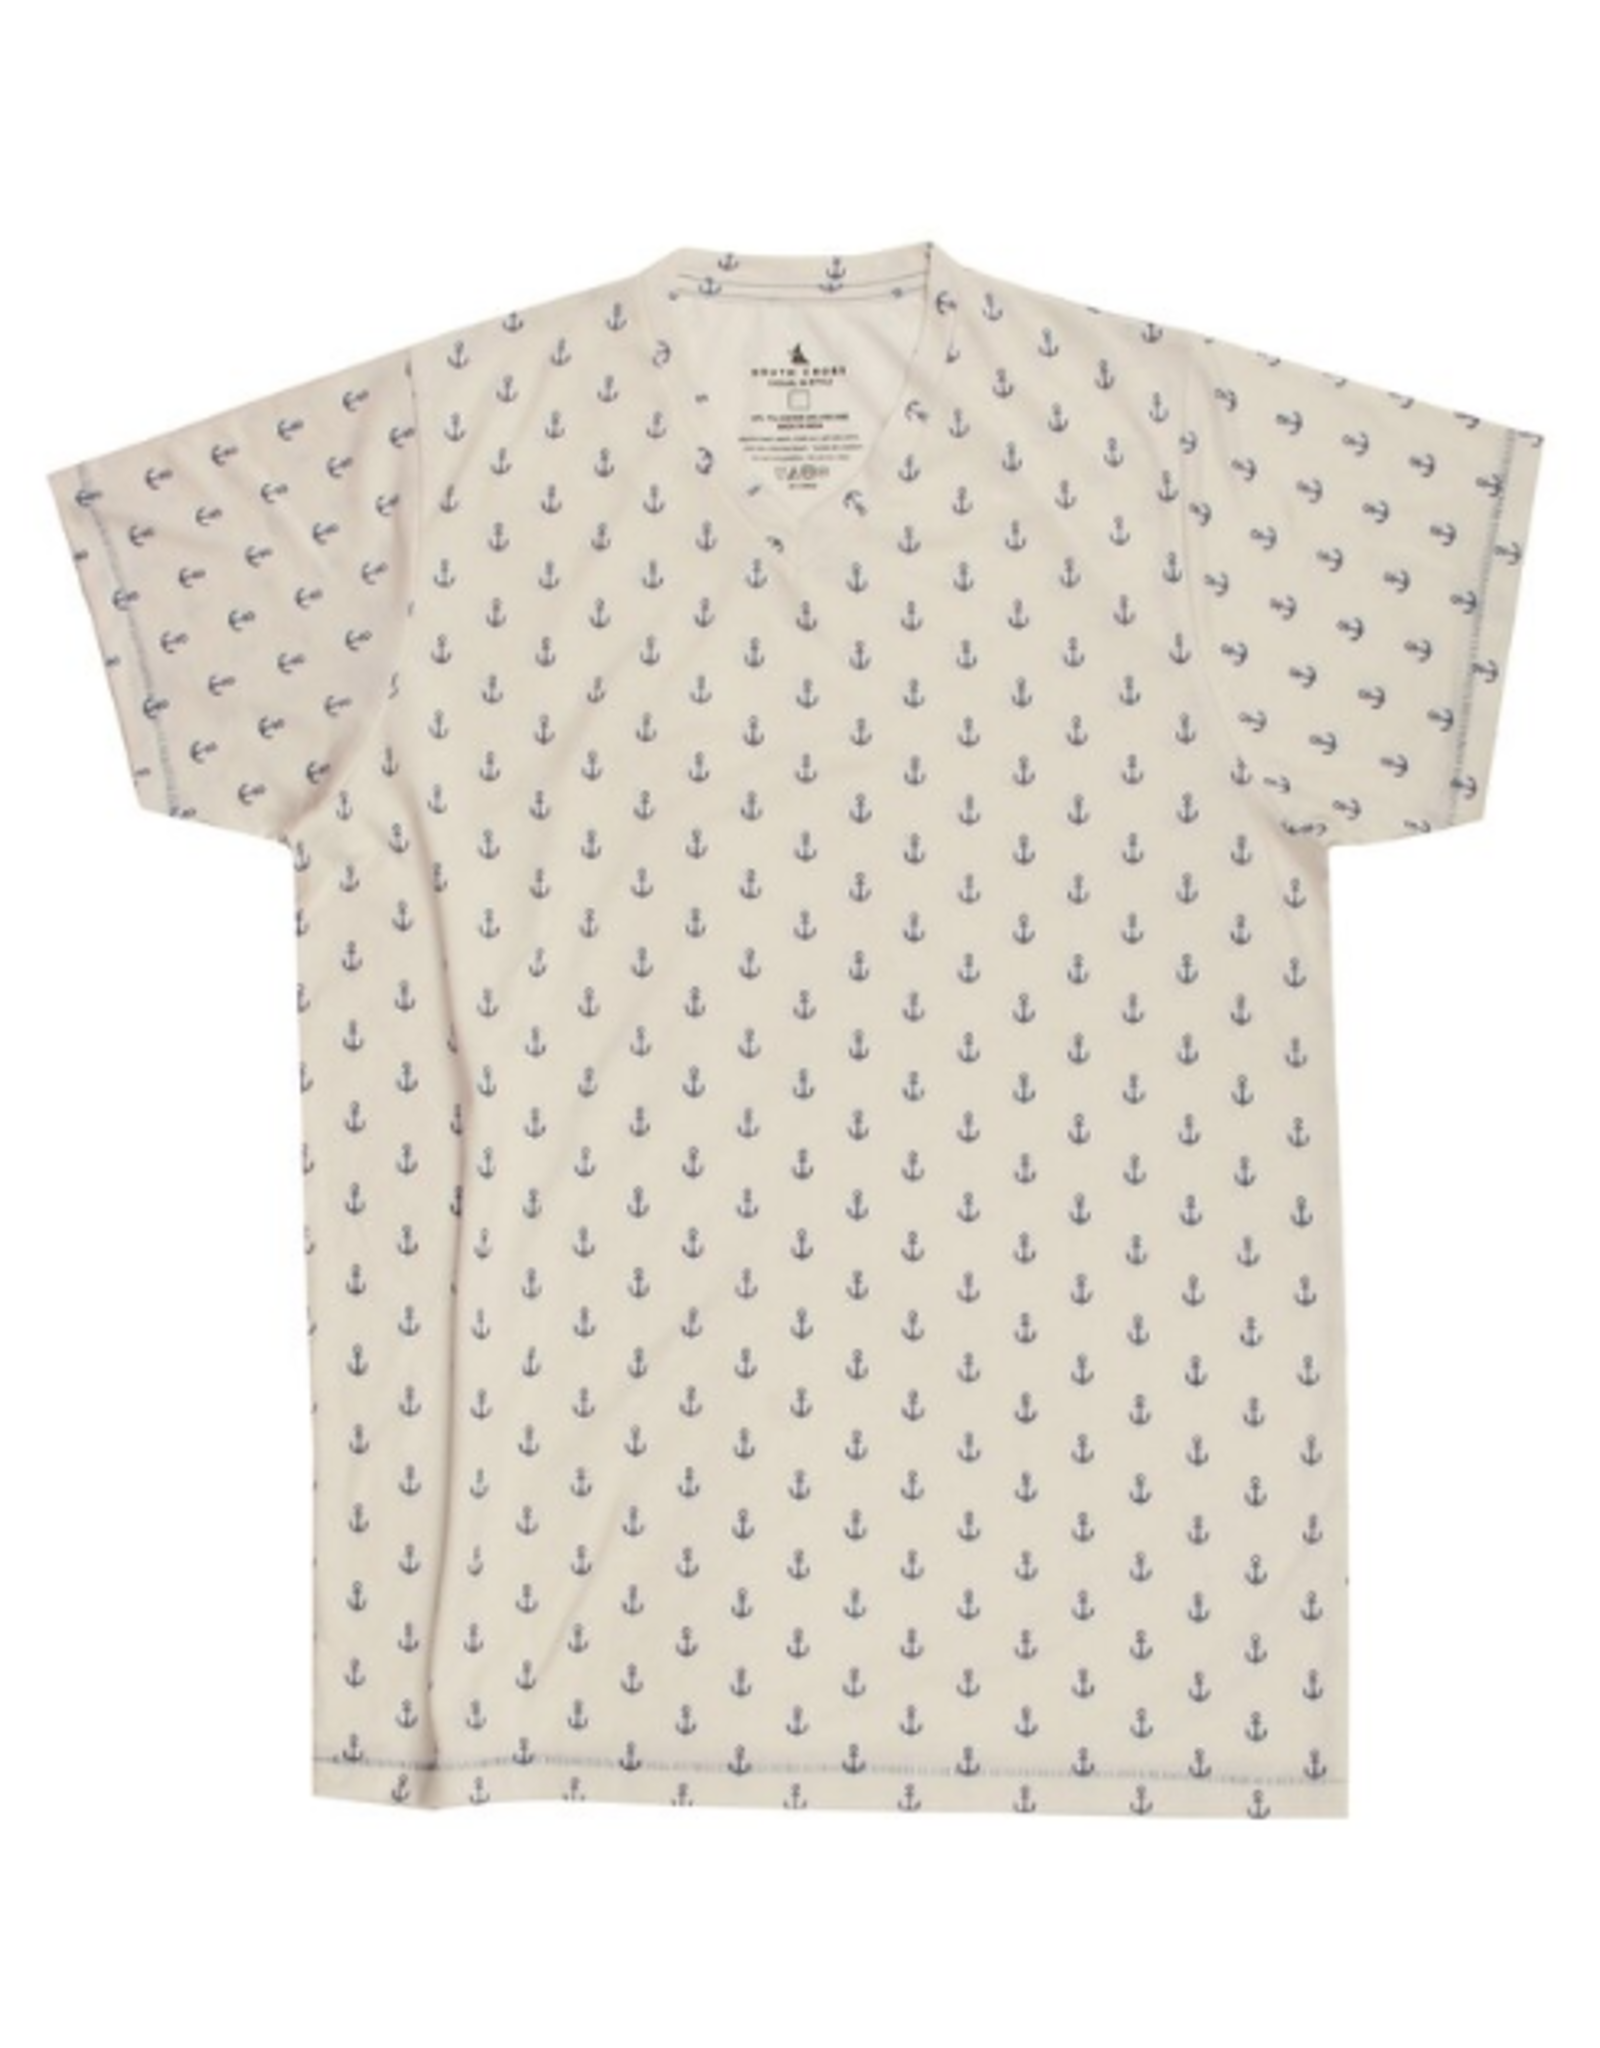 SOUTH CROSS ANCHORS SHIRT